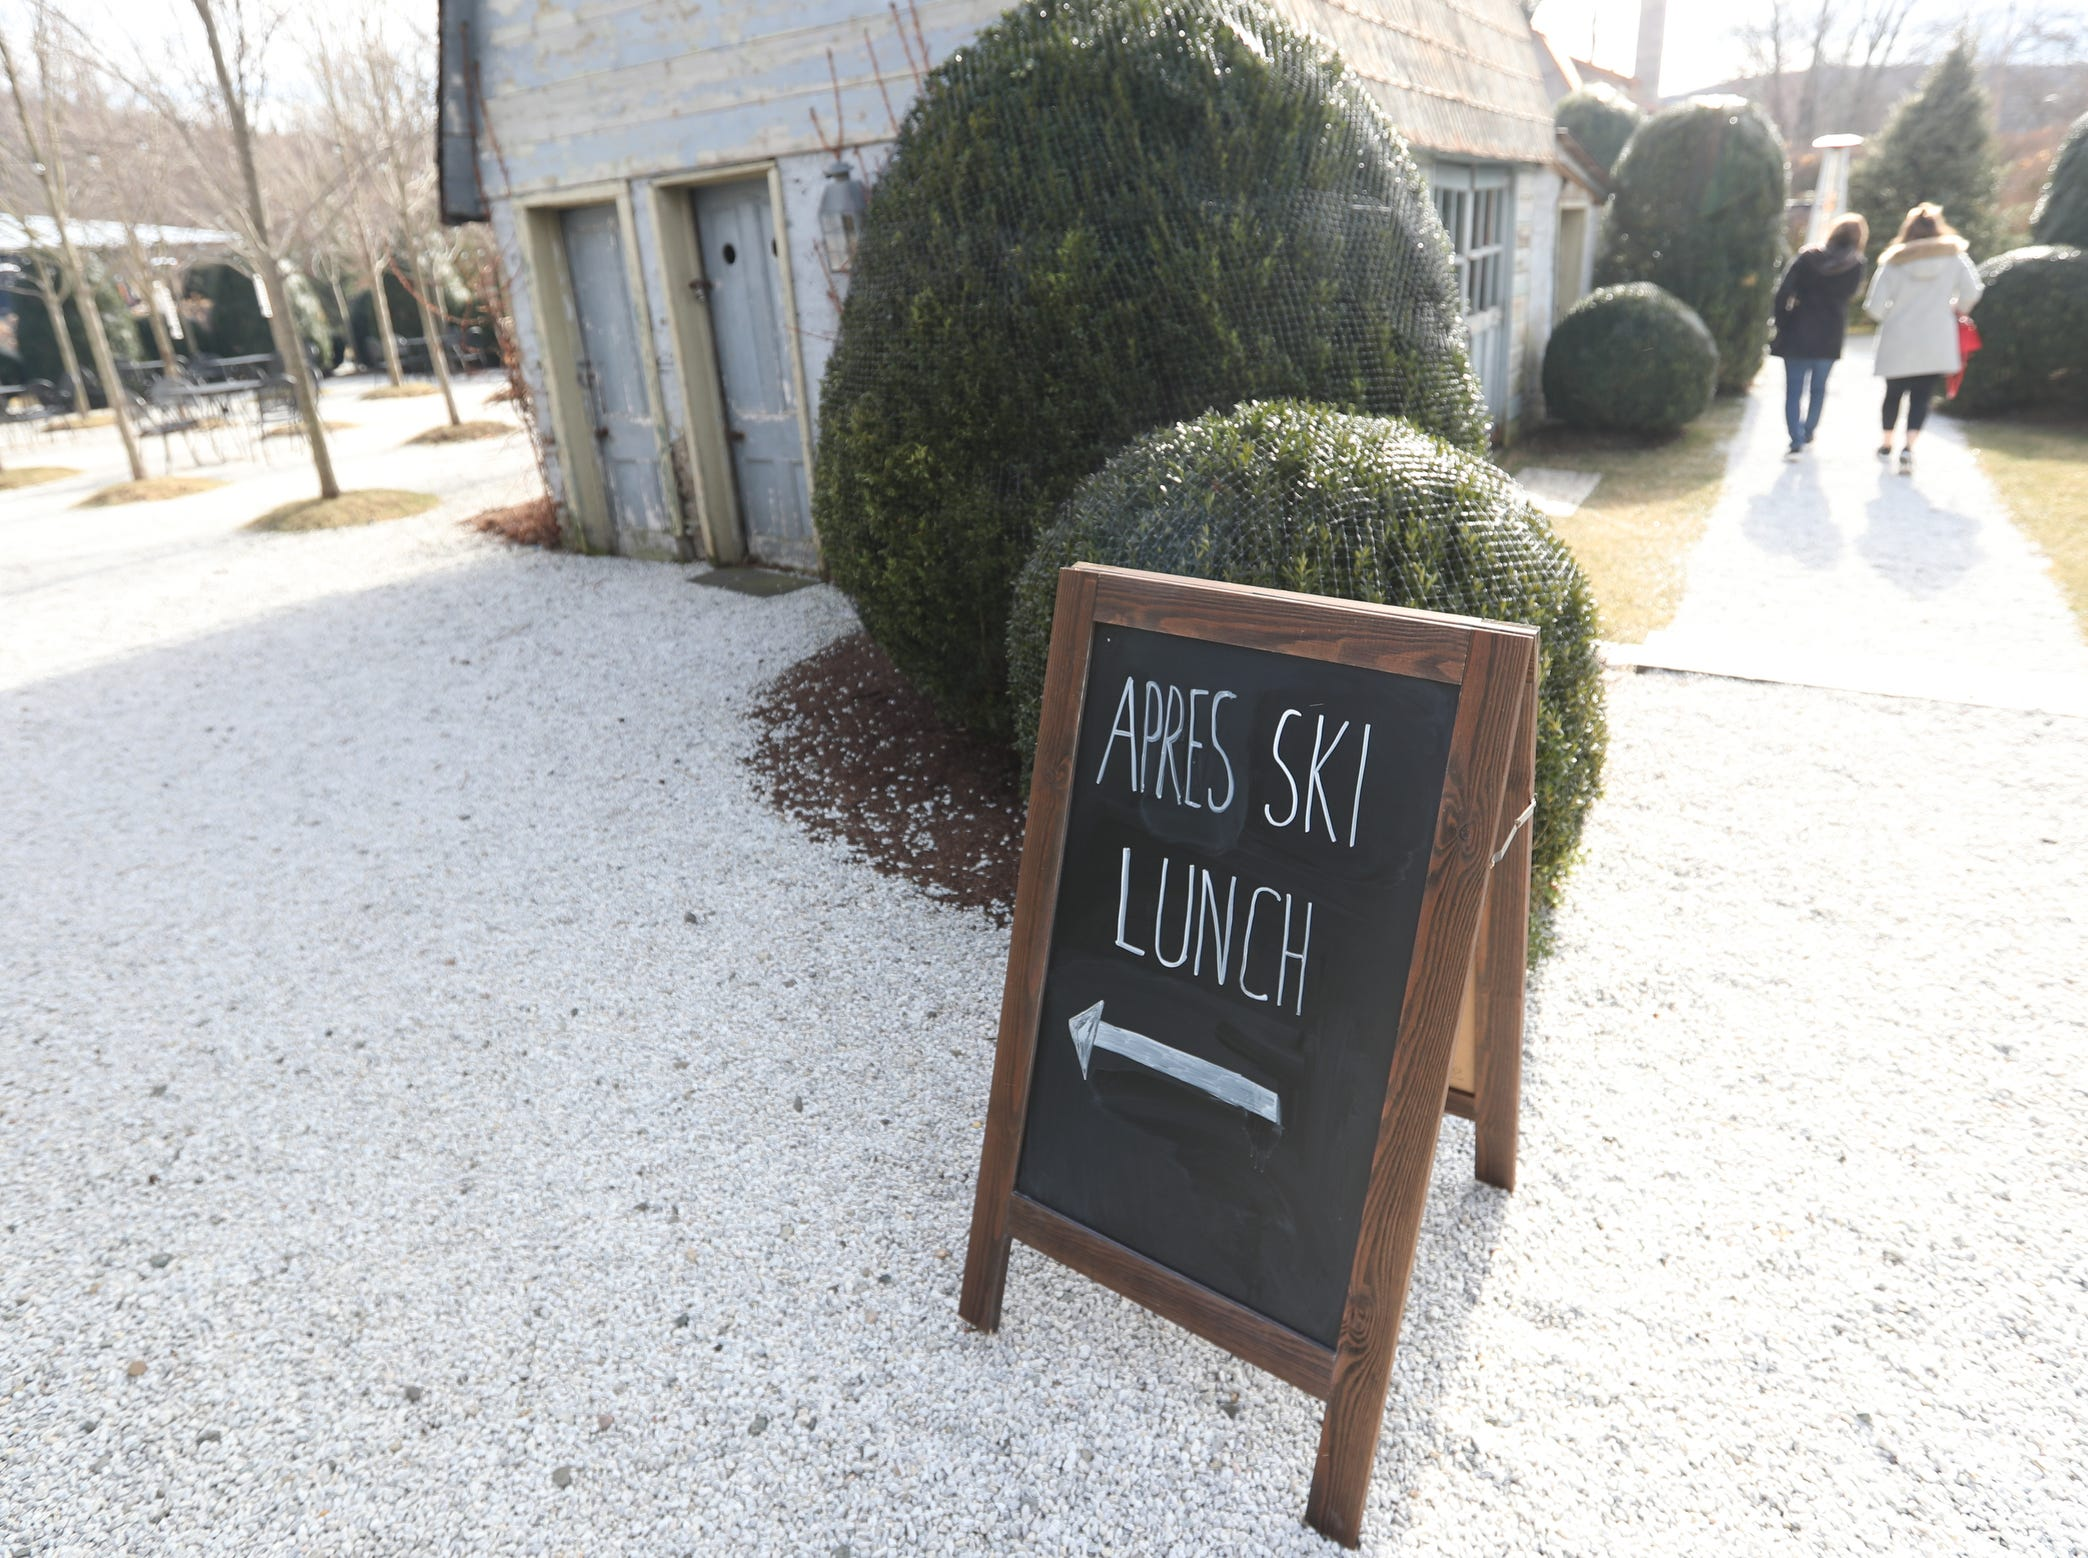 The Valley Rock Inn & Mountain Club in Sloatsburg hosts a apres ski lunch on  Saturdays. Saturday, January 12, 2019.